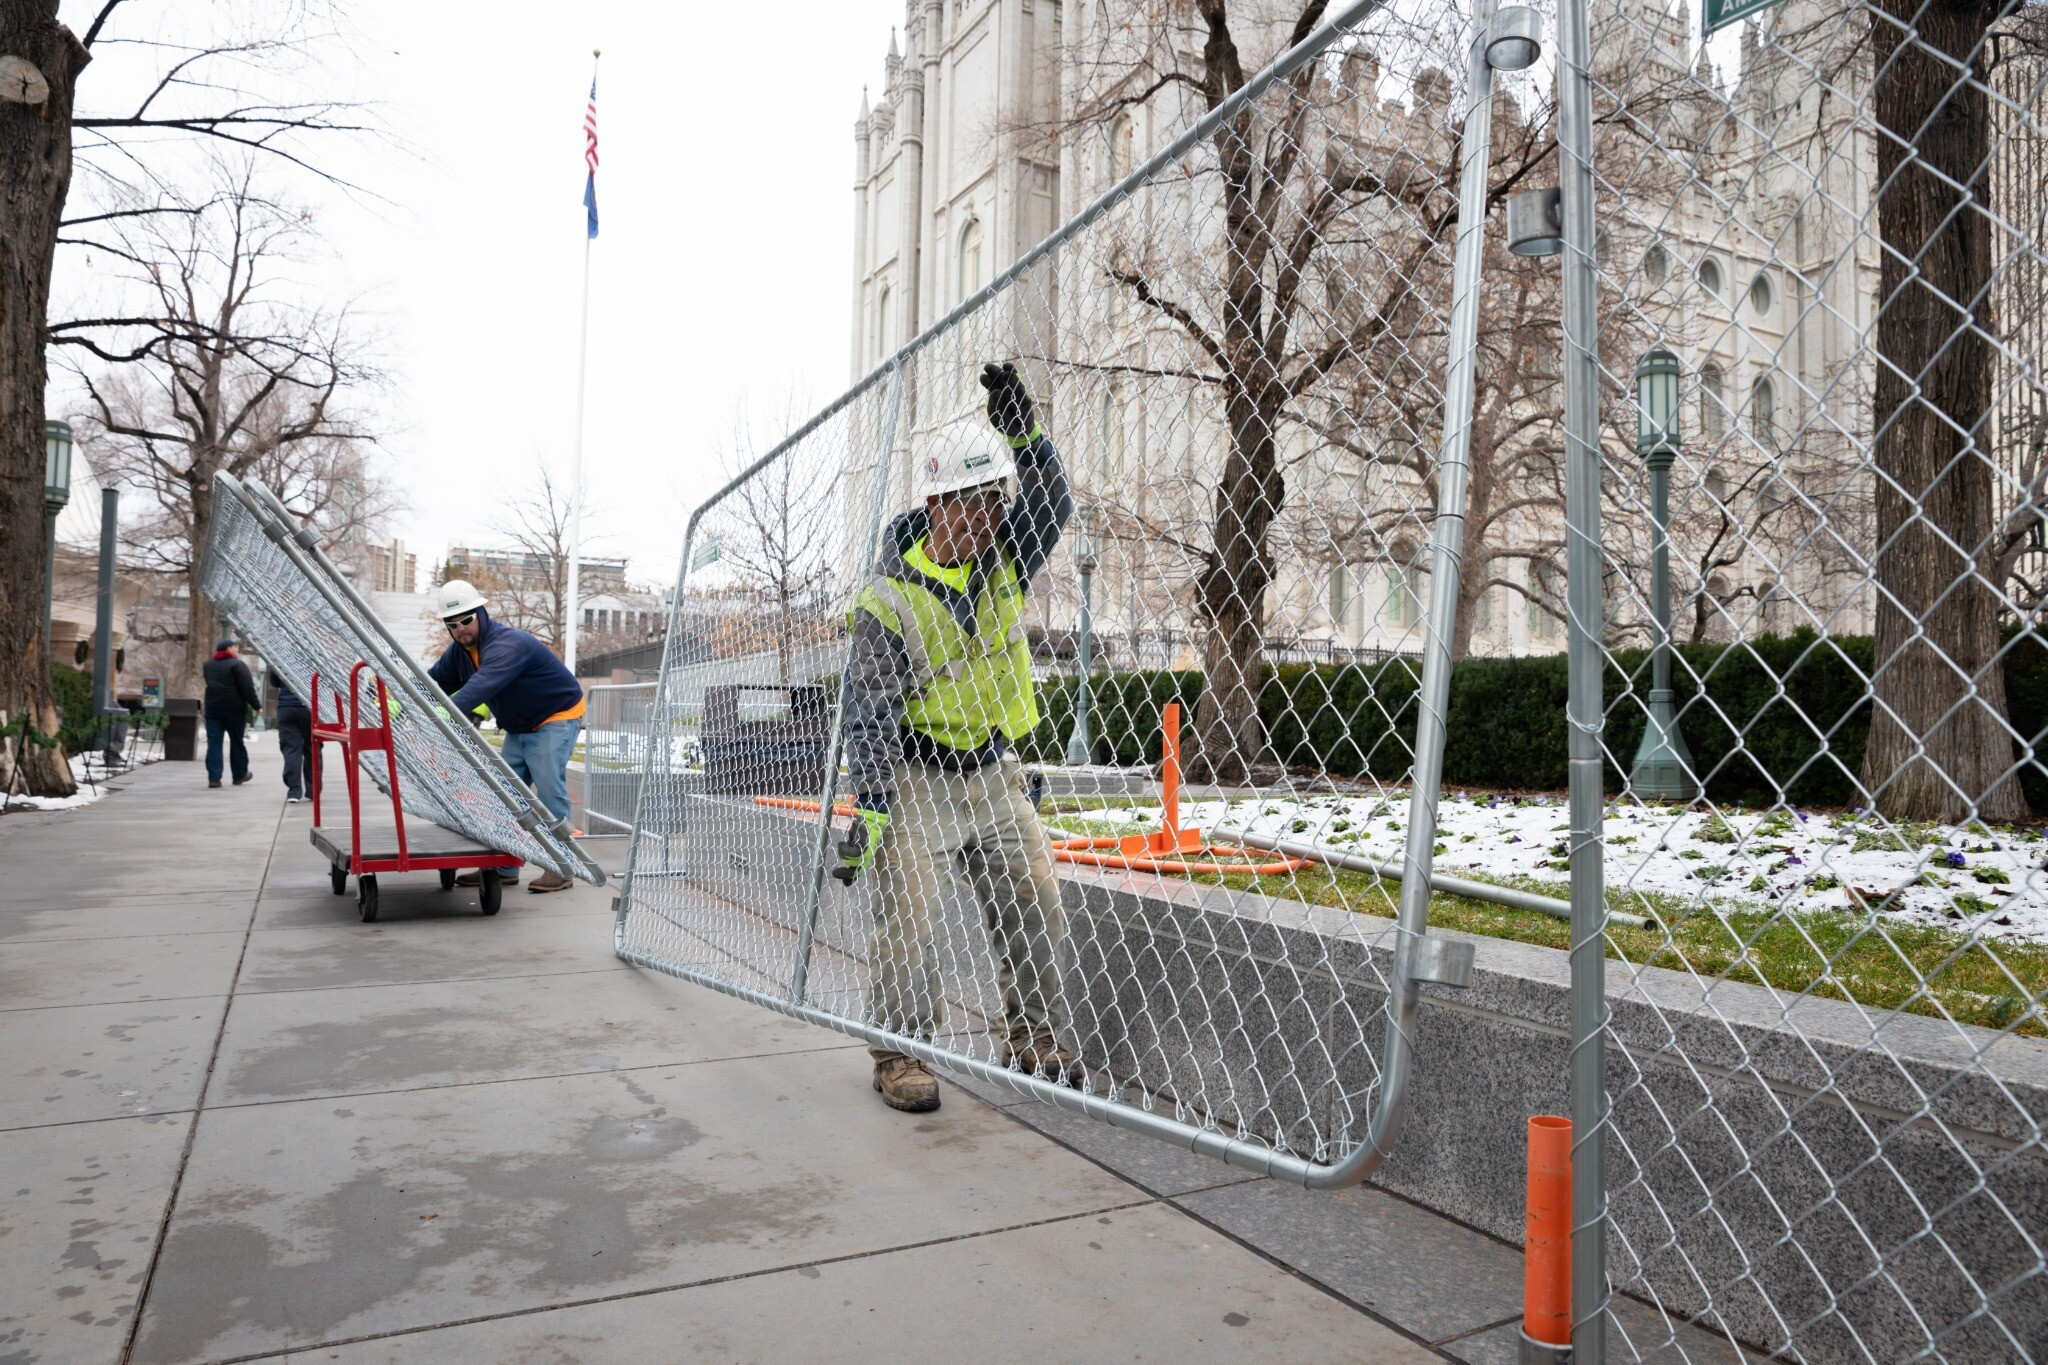 Photos: Salt Lake Temple is being decommissioned, will no longer be a dedicated temple